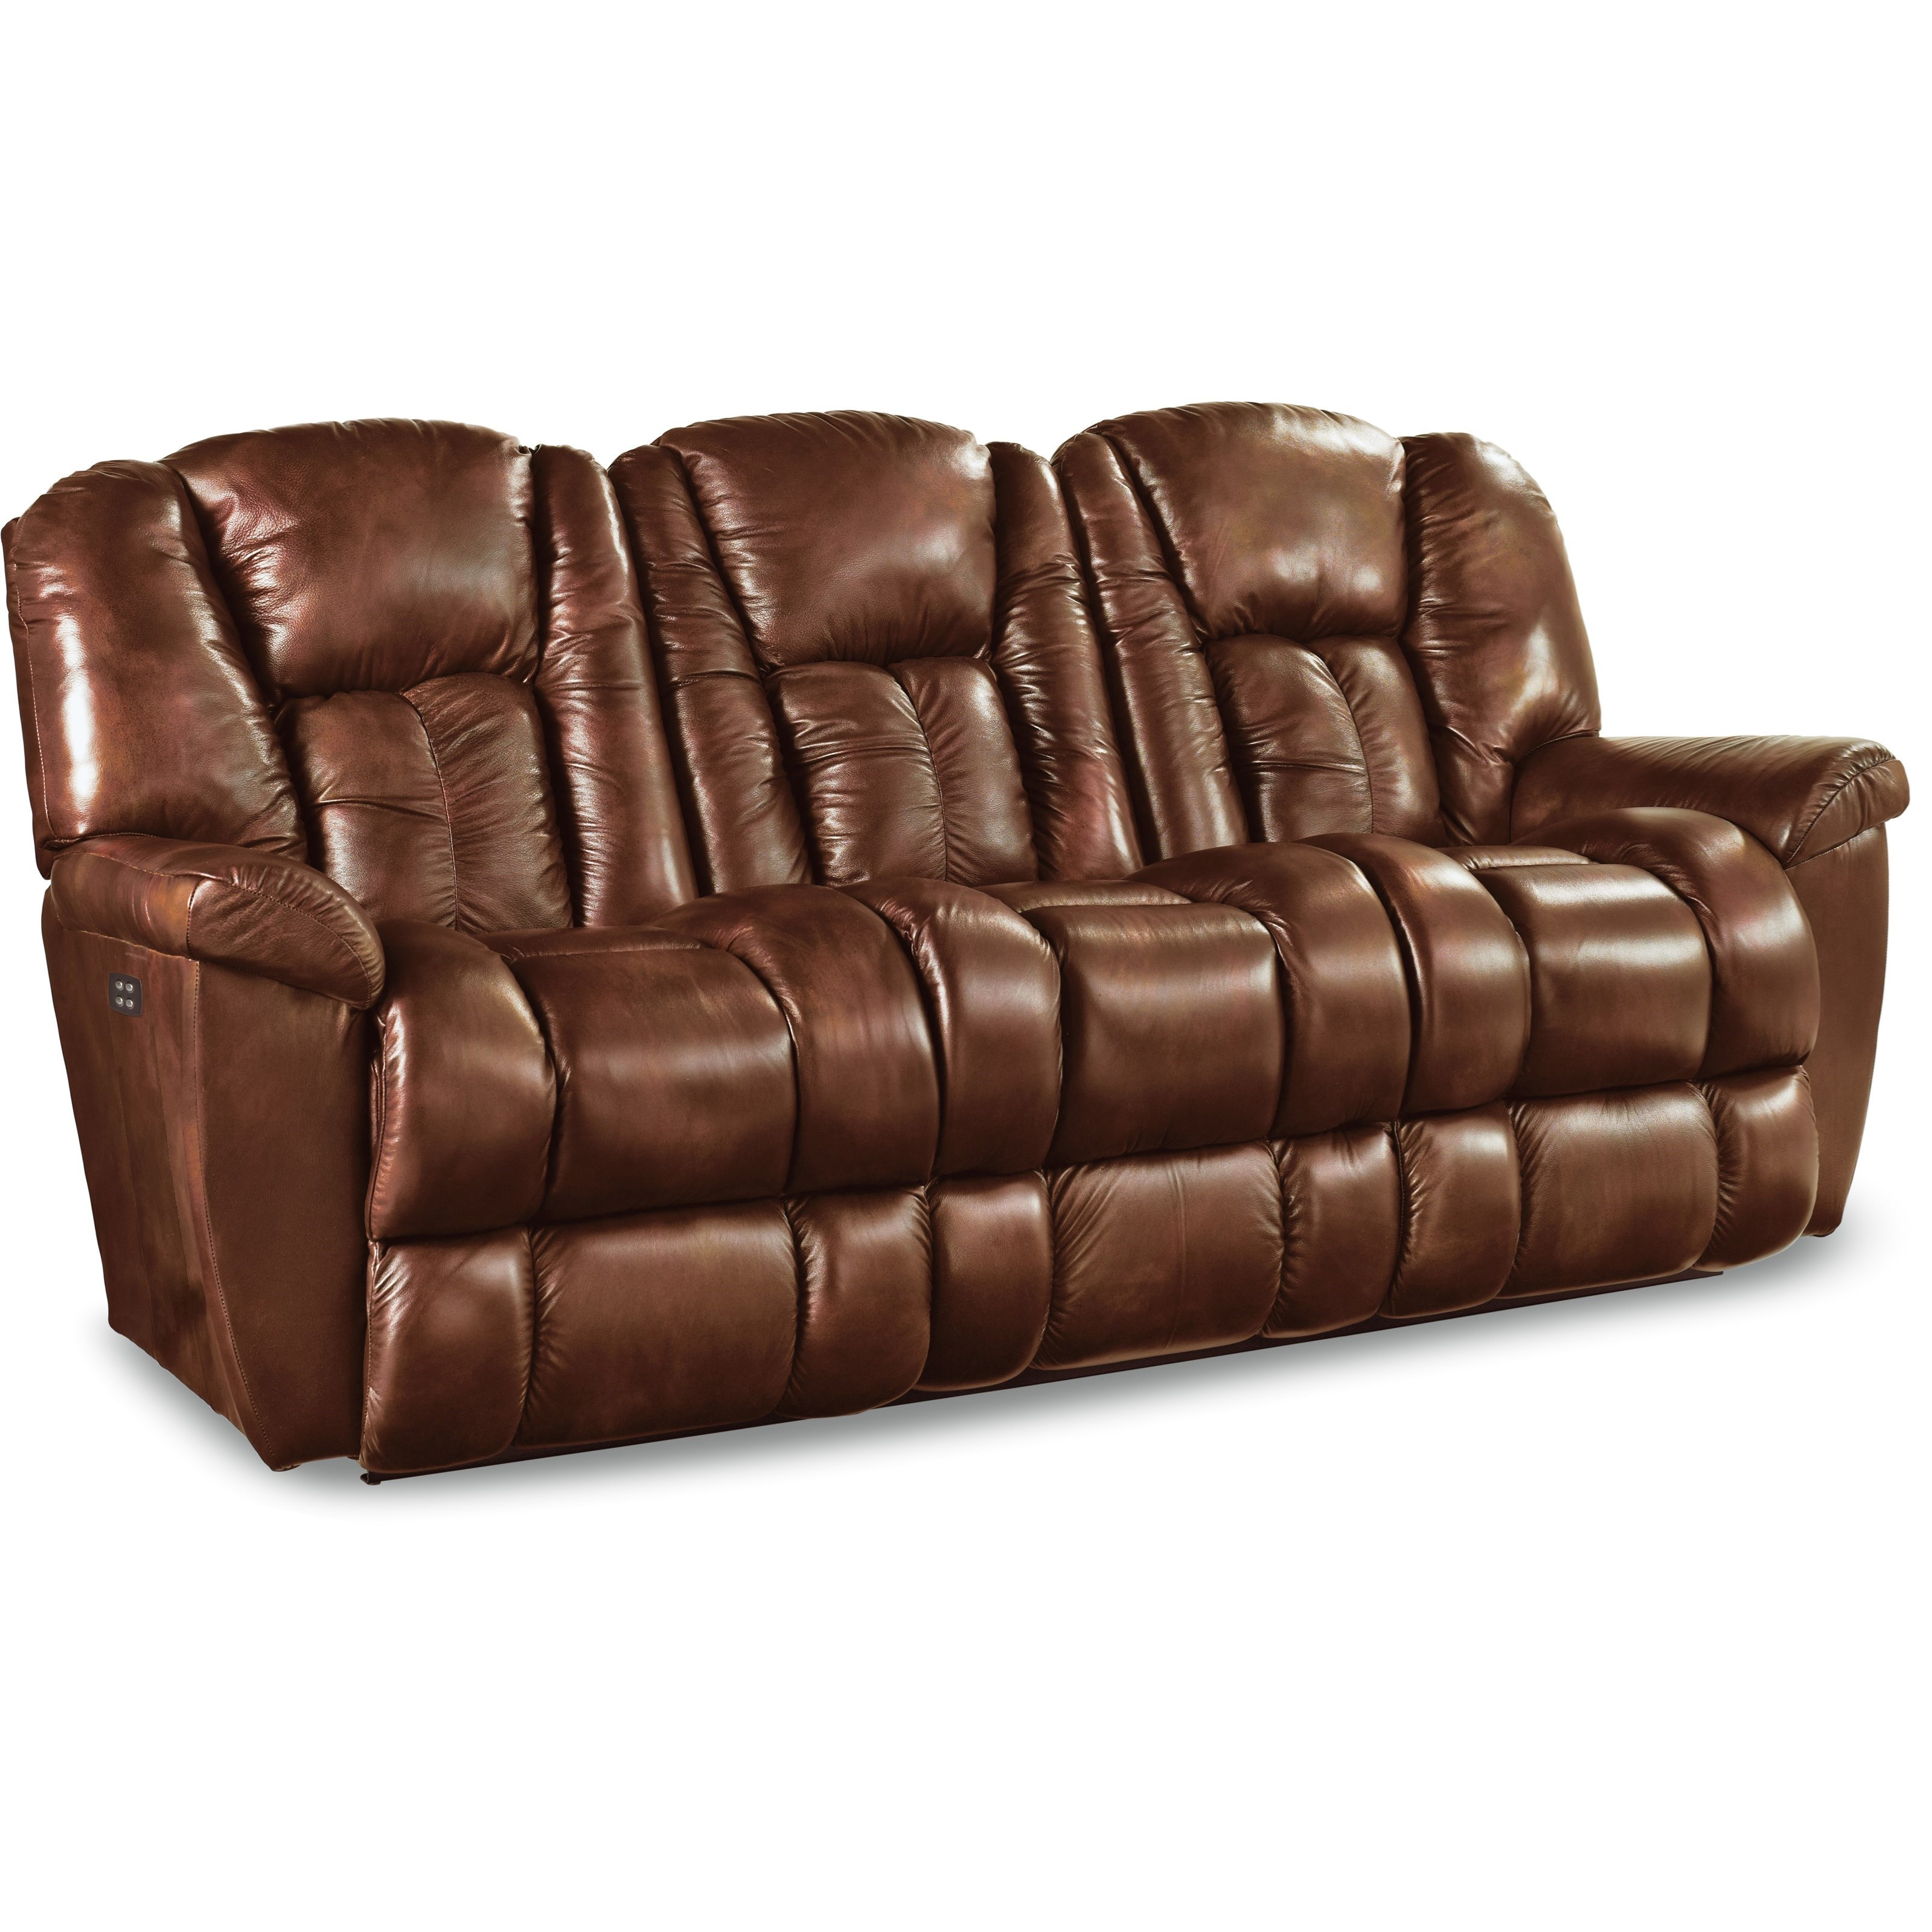 sofa world recliner chairs modern tables with storage la z boy maverick power recline xrw full reclining bennett s